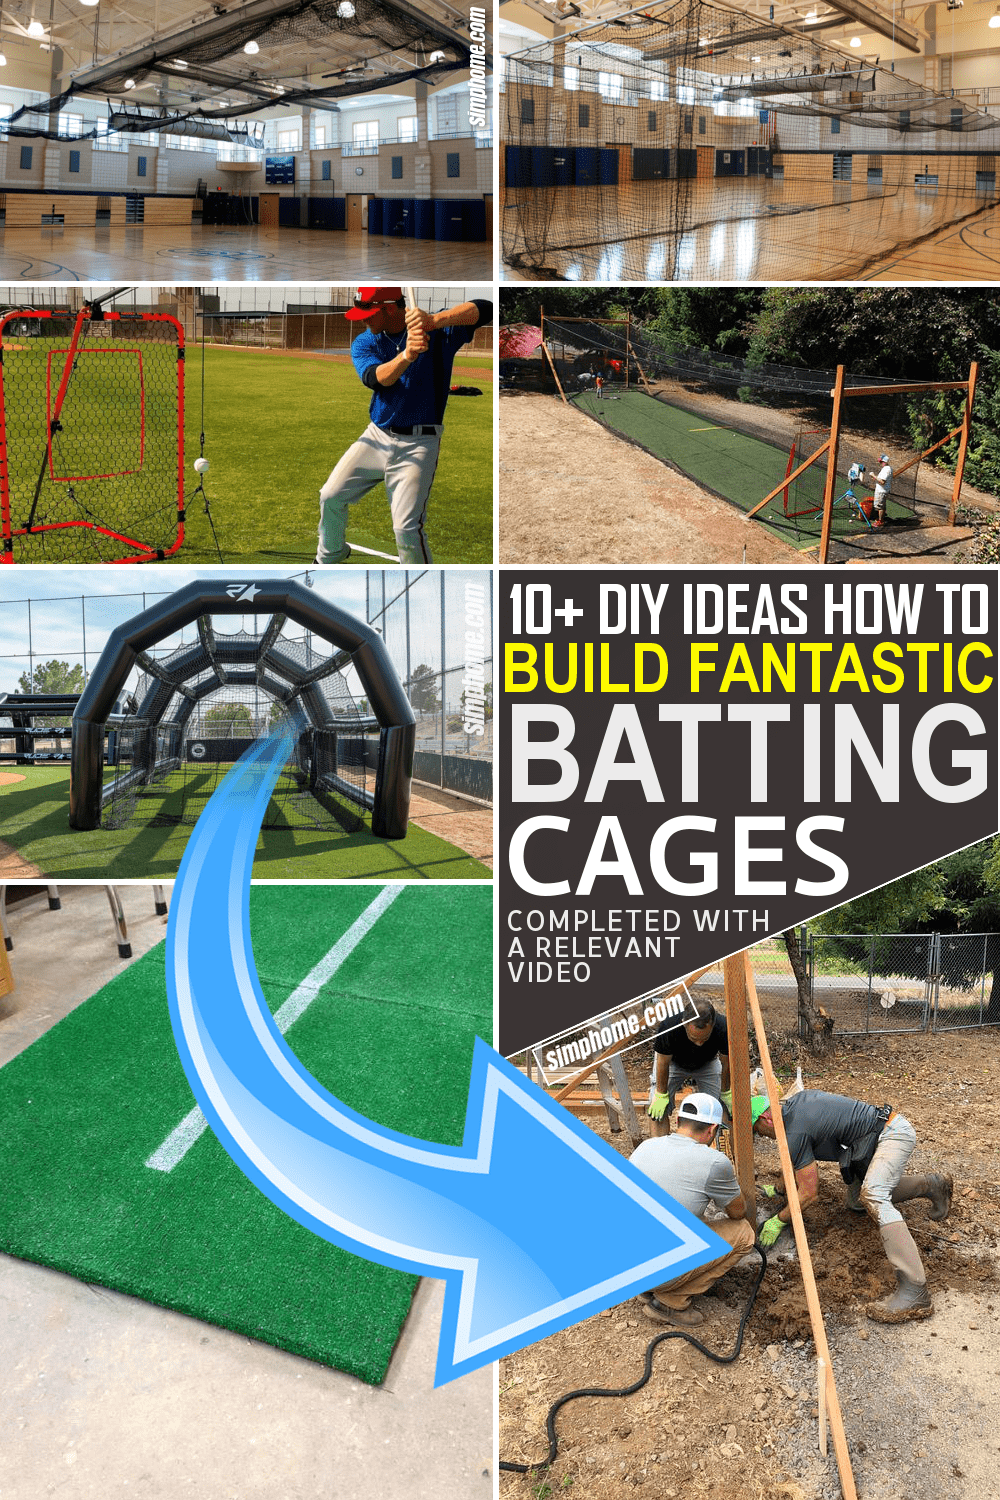 30 Smart Ideas How to Make Backyard Batting Cages - Simphome